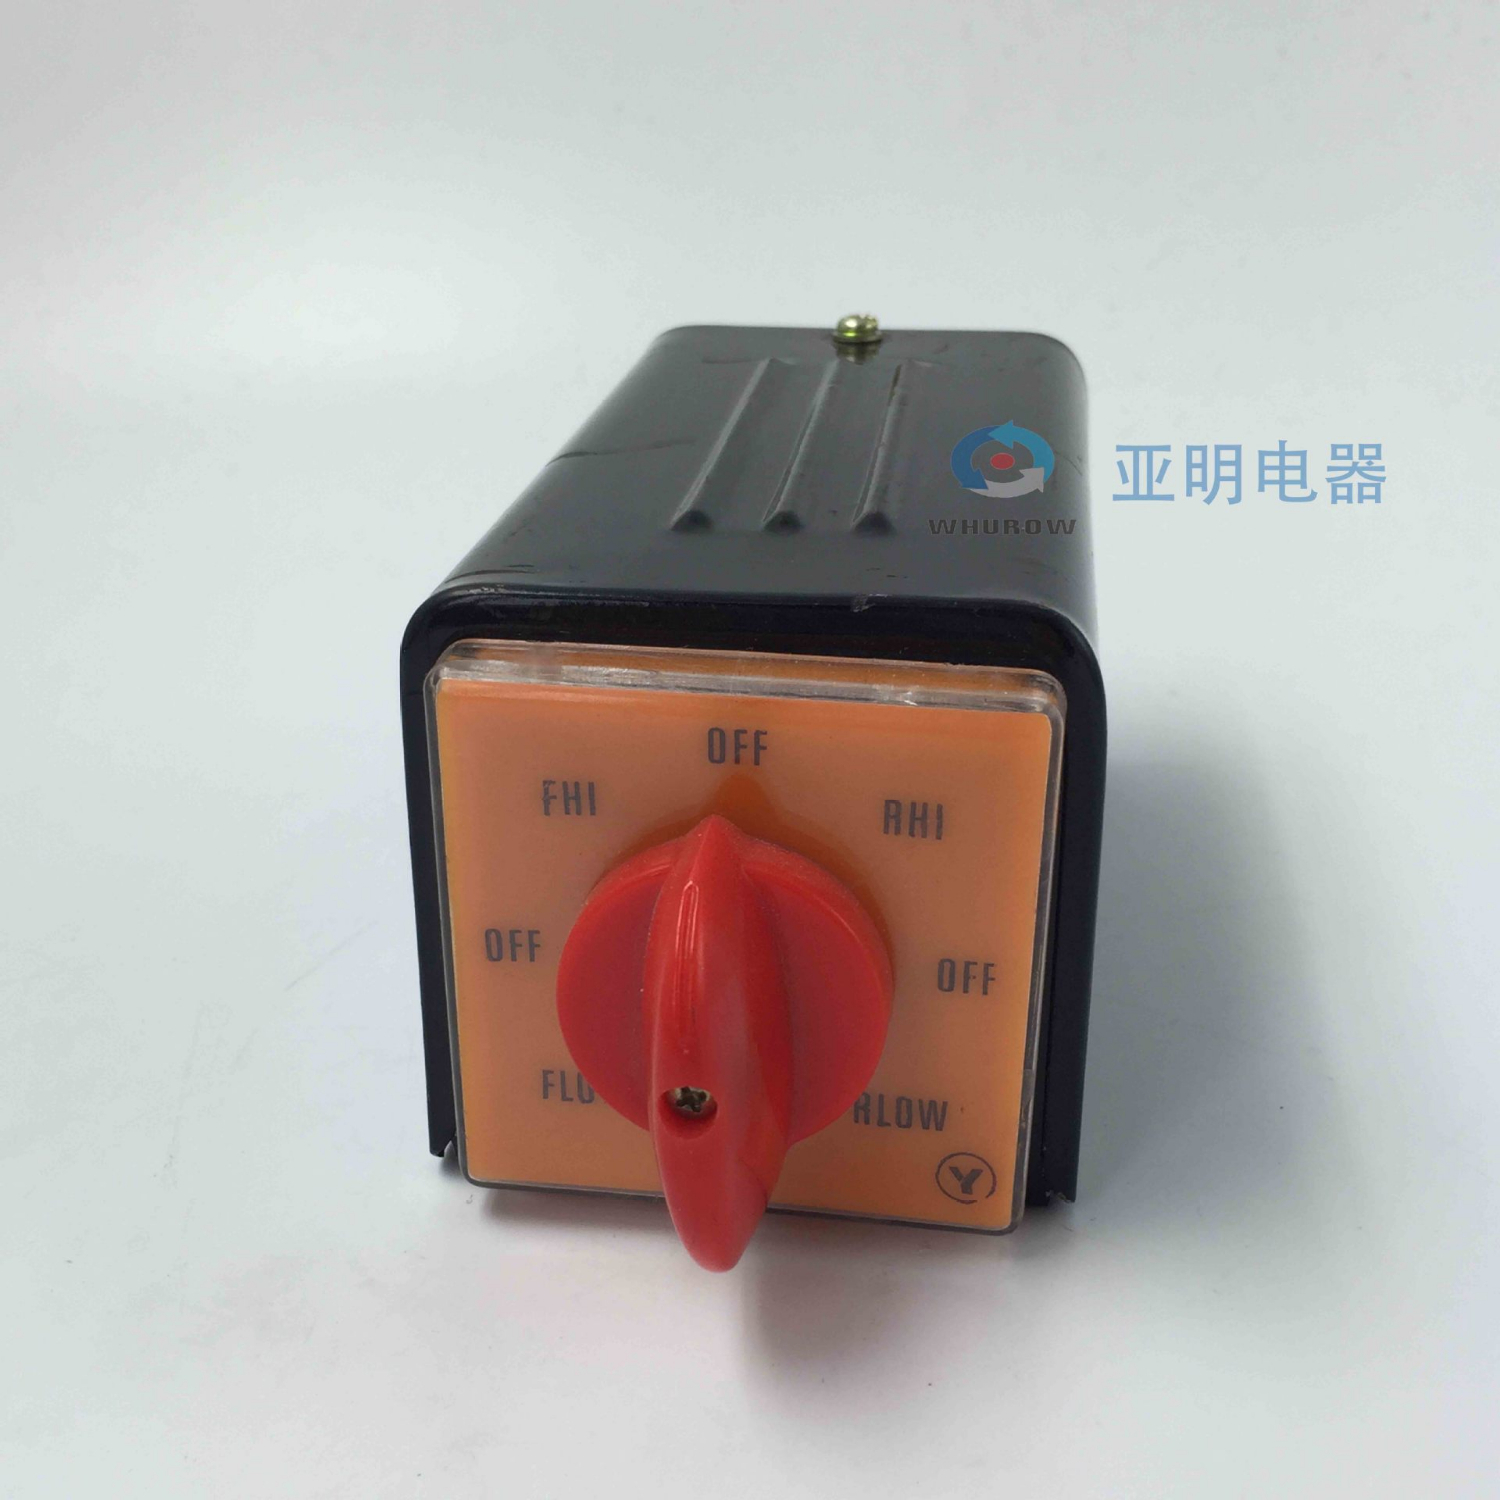 7 Position Rotary Cam Switch Multi Step 6 Poles 20a Metal Shell T 16exf64d 6bf Selector Changeover Red Handle Control Circuit Switches Aliexpress